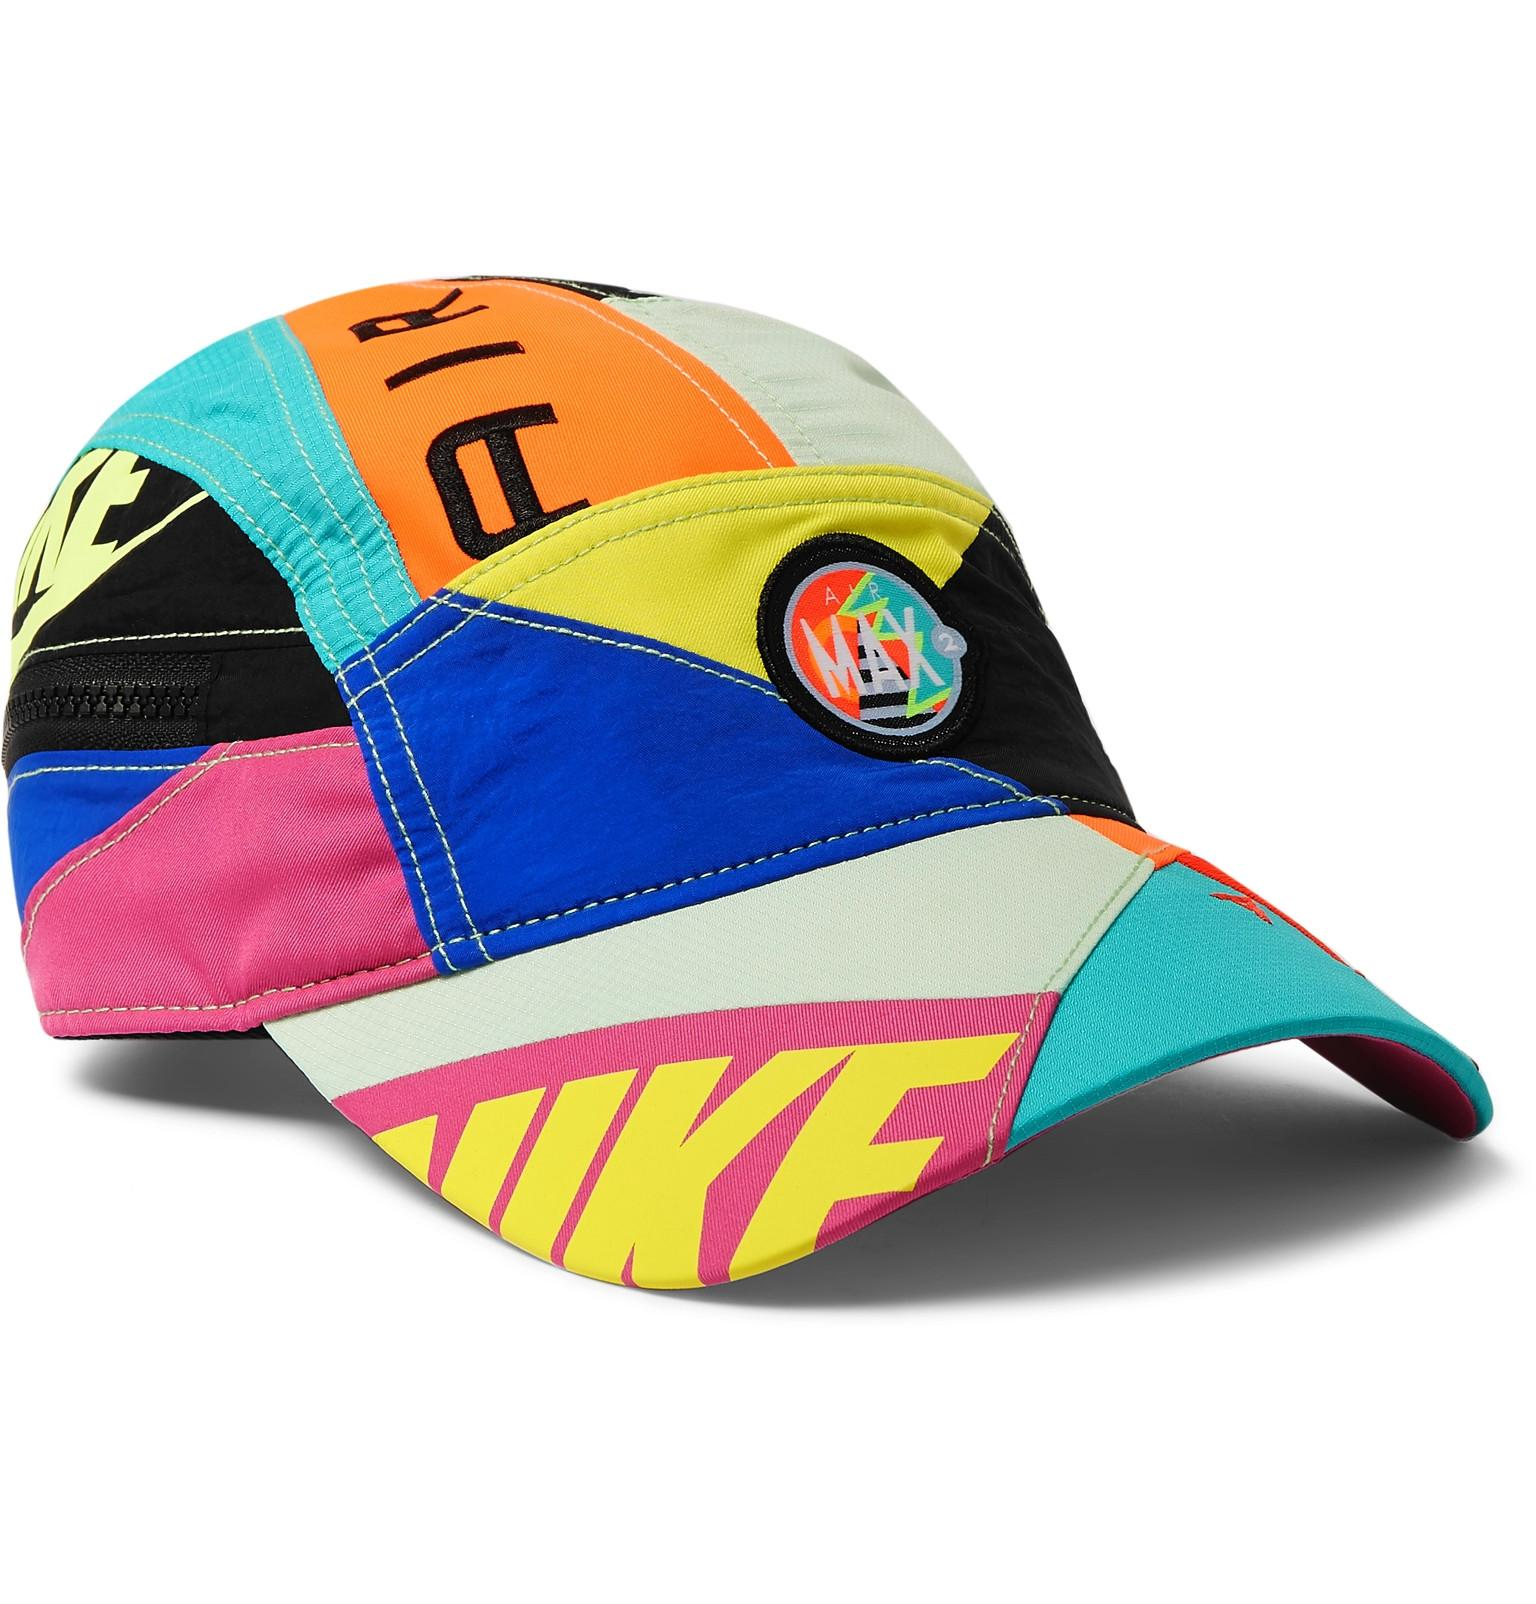 92a2392ede Nike + Atmos Aw84 Panelled Shell Baseball Cap in Blue for Men - Lyst